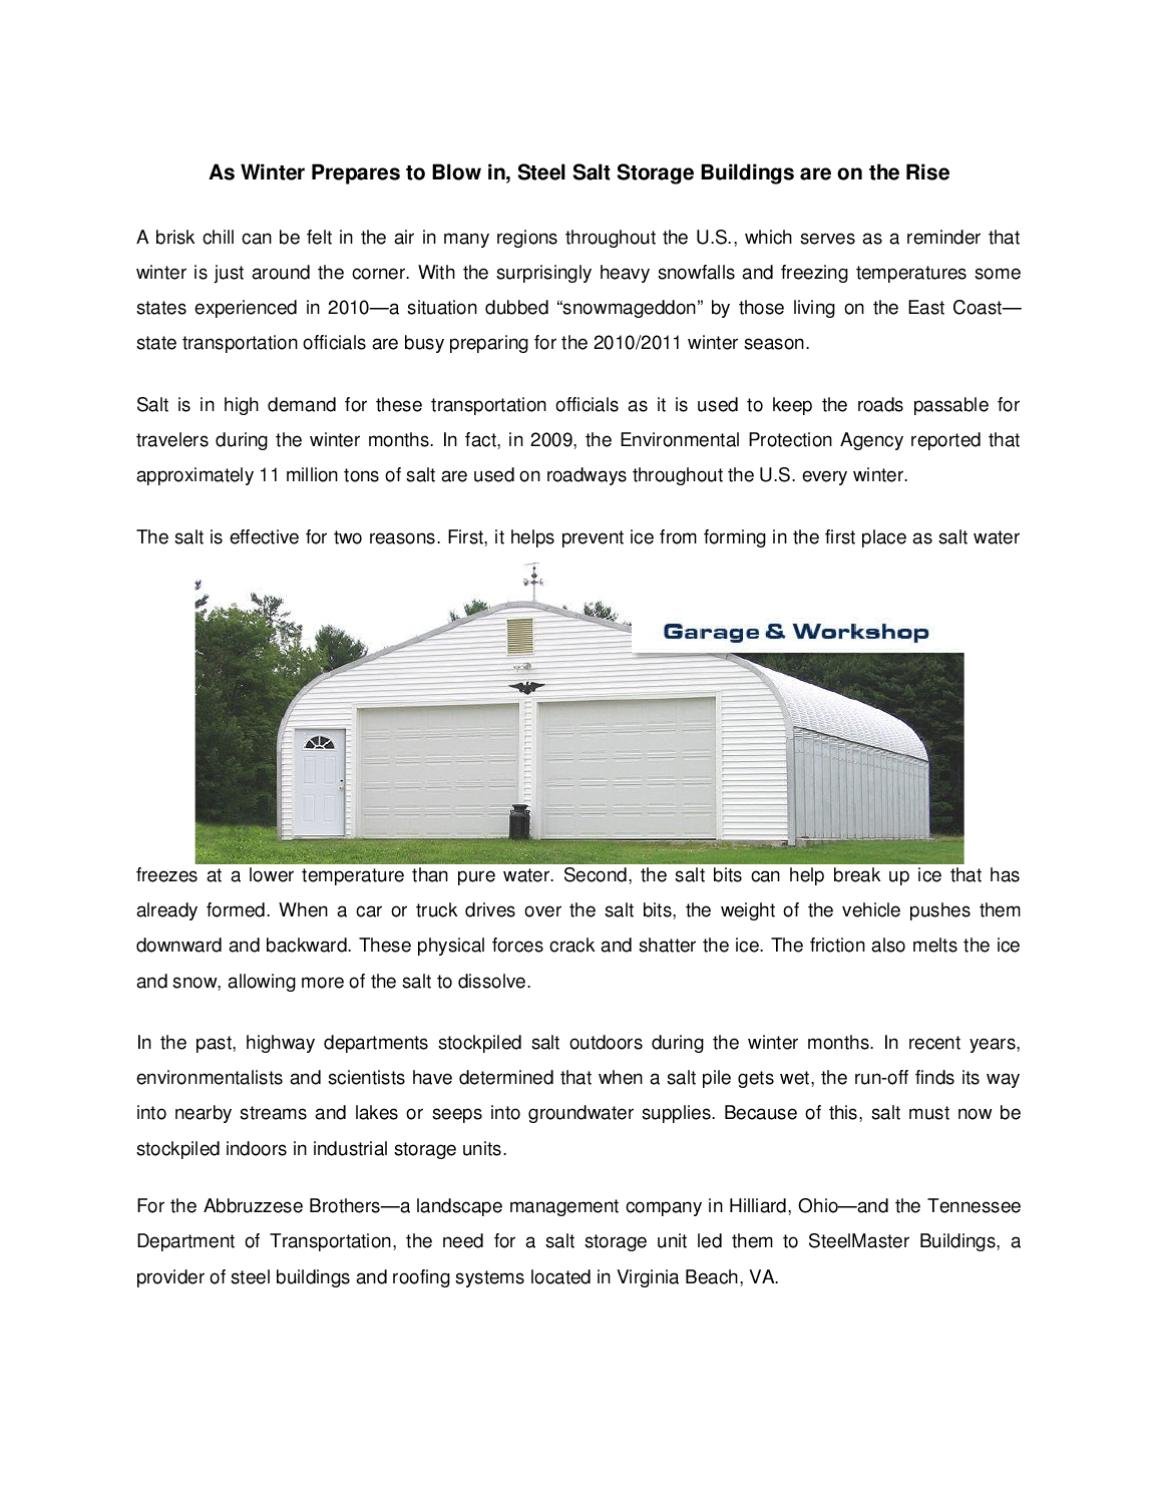 As Winter Prepares to Blow in, Steel Salt Storage Buildings